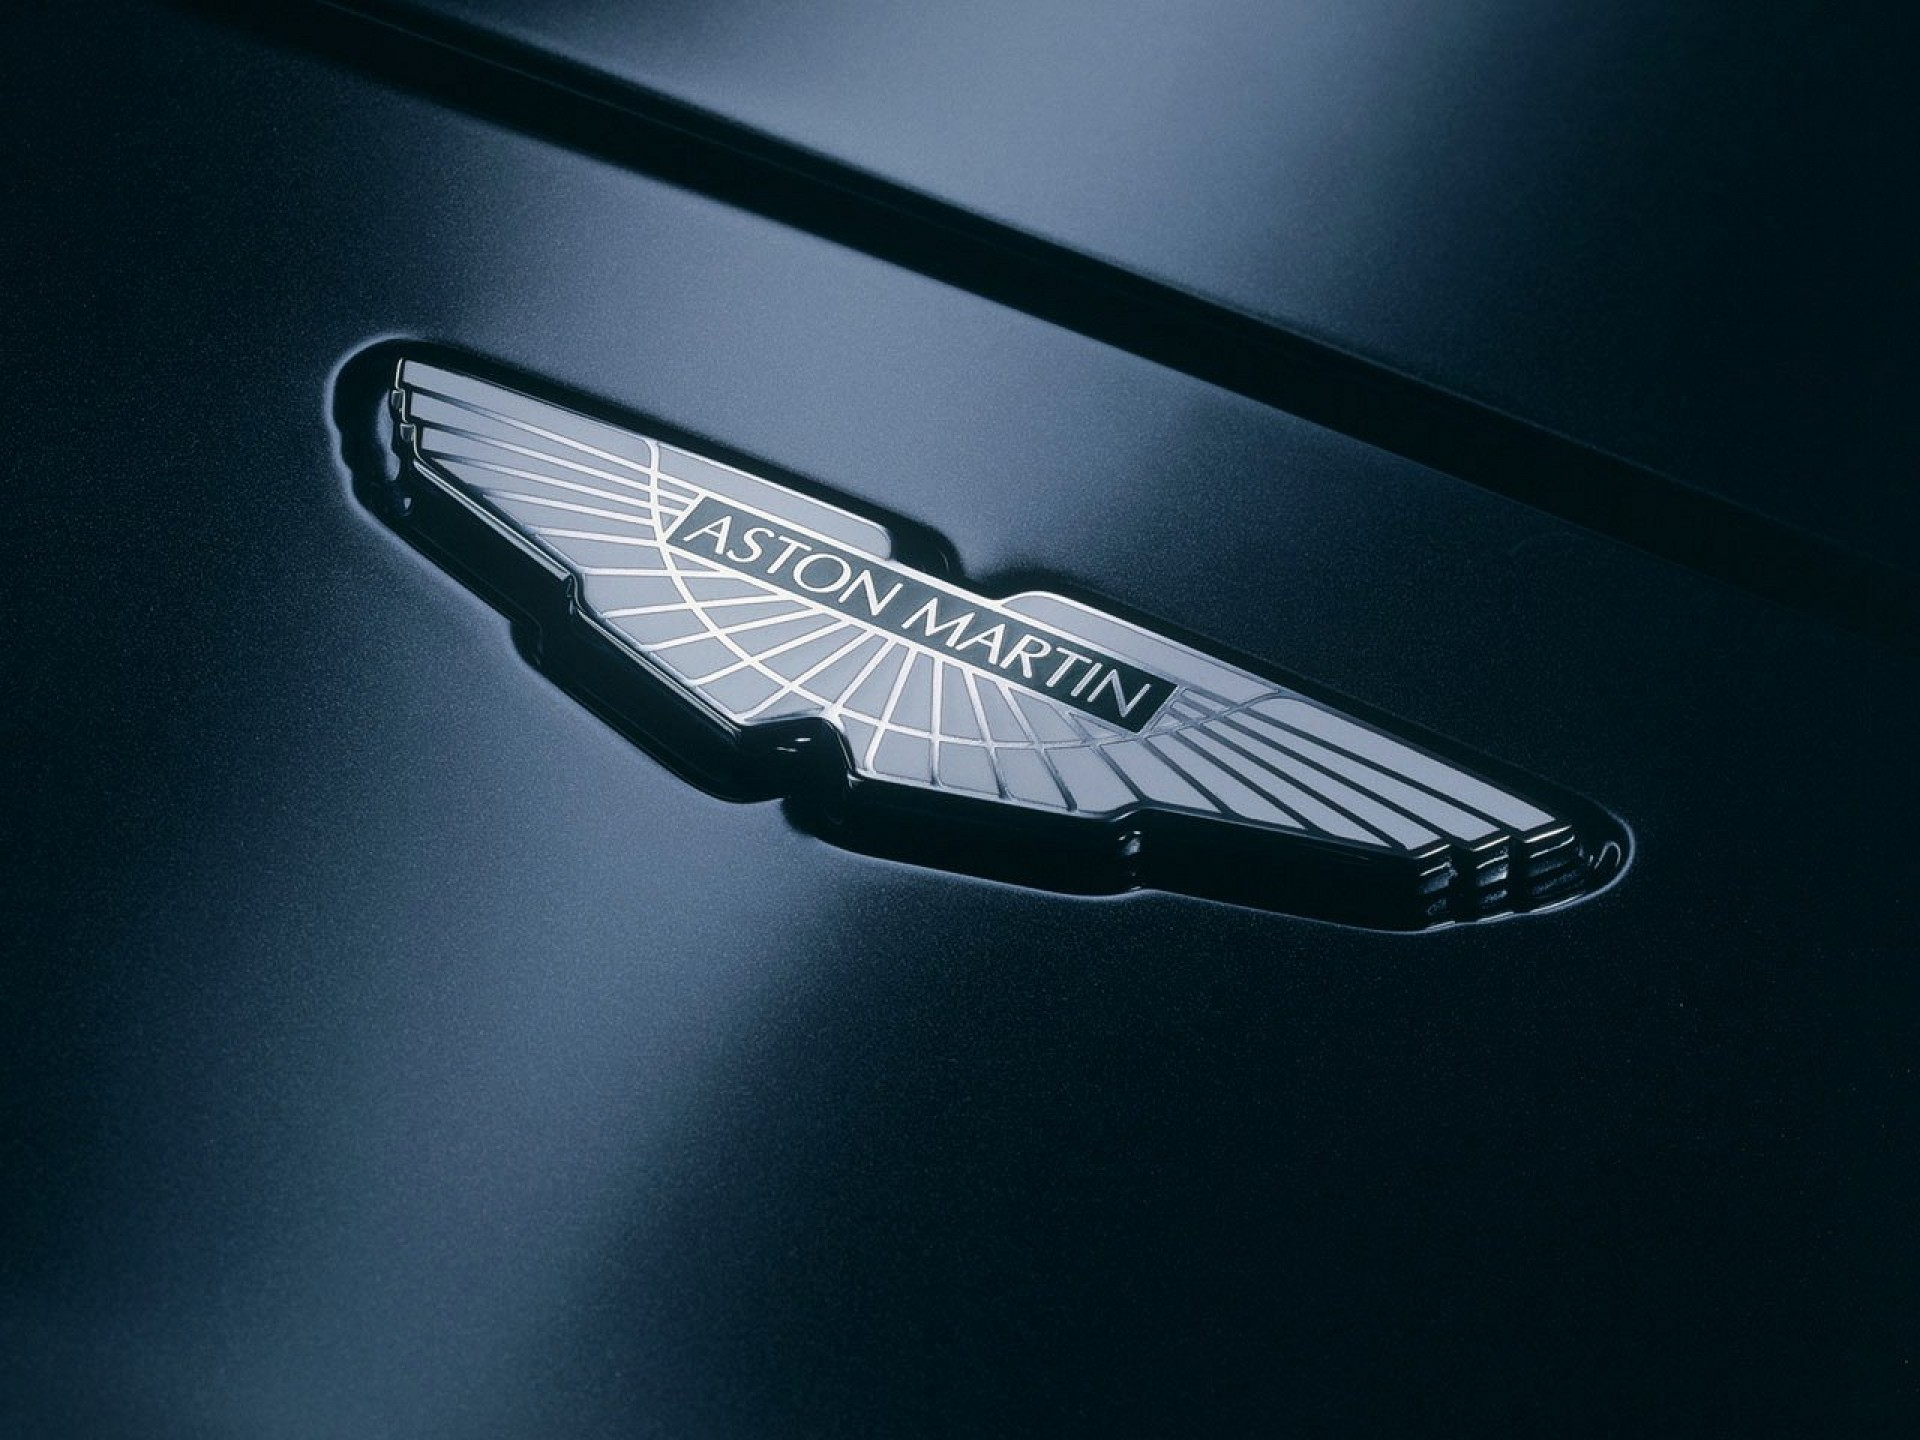 Aston Martin Logo Wallpapers 55 images 1920x1440